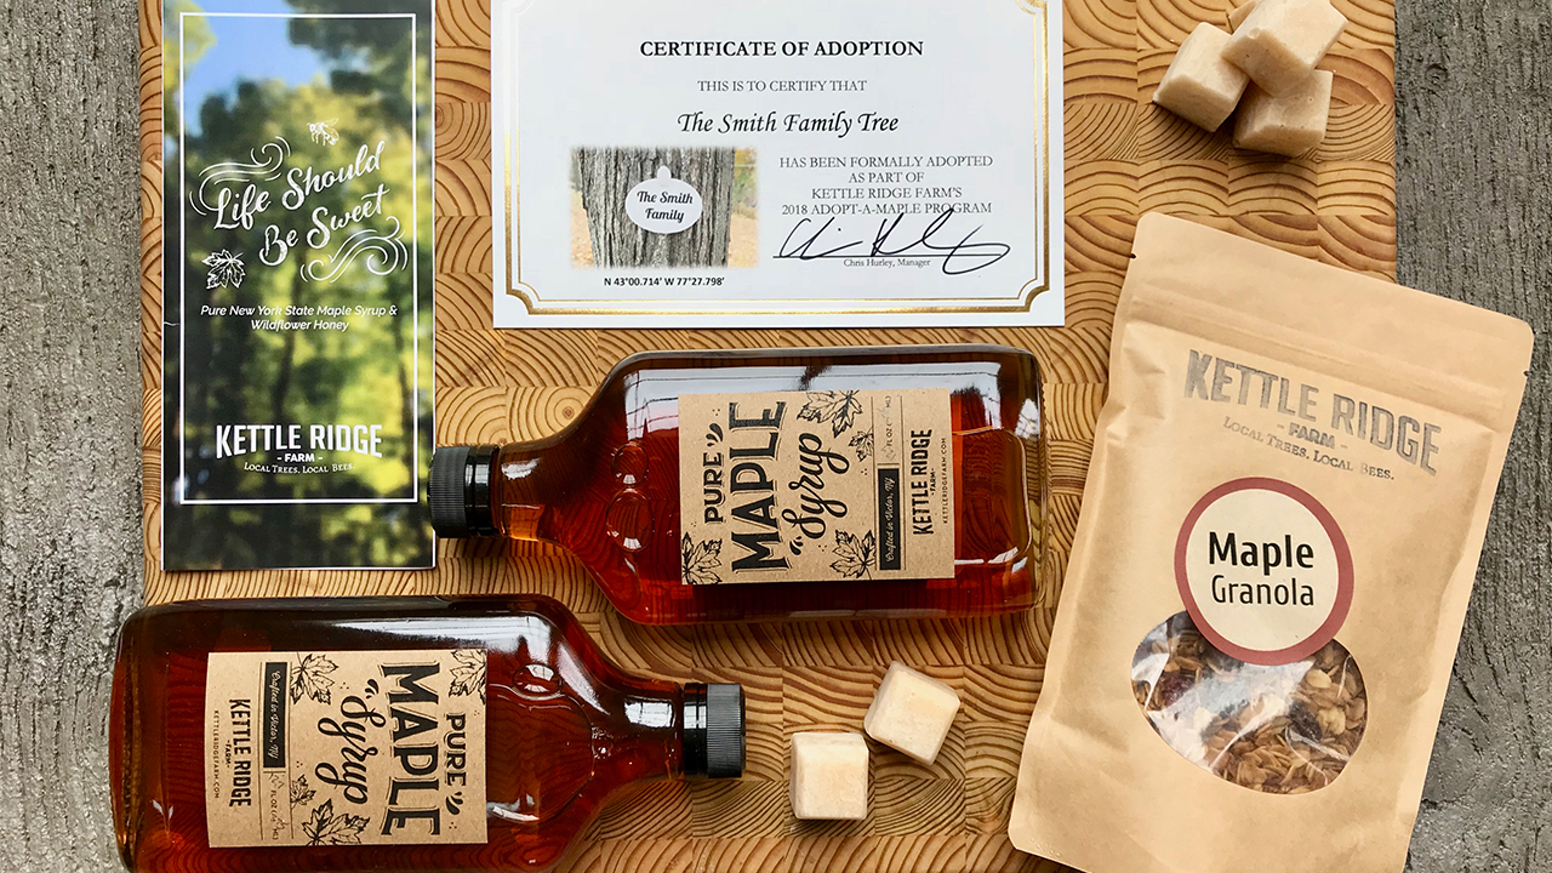 Adopt a maple tree and become part of the maple syrup tradition at Kettle Ridge Farm! www.KettleRidgeFarm.com